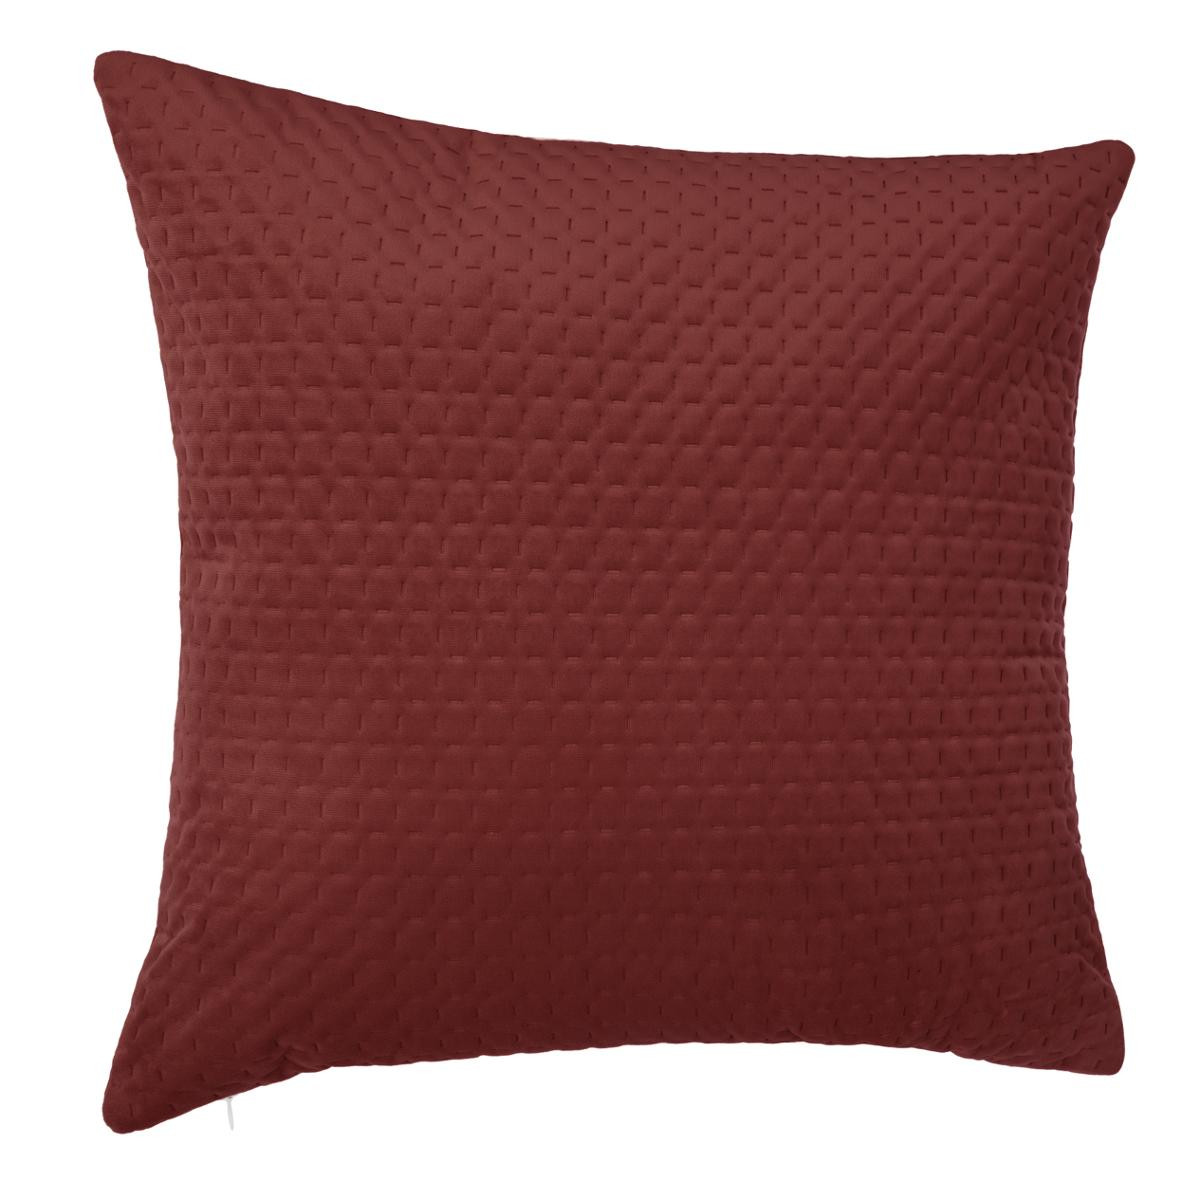 """Calitime Pillows Throw Coussin Couvre Solide Doux Velours Maïs rayures 22/"""" X 22/"""""""